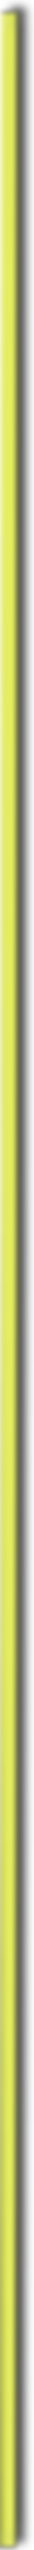 verticalyellow.png